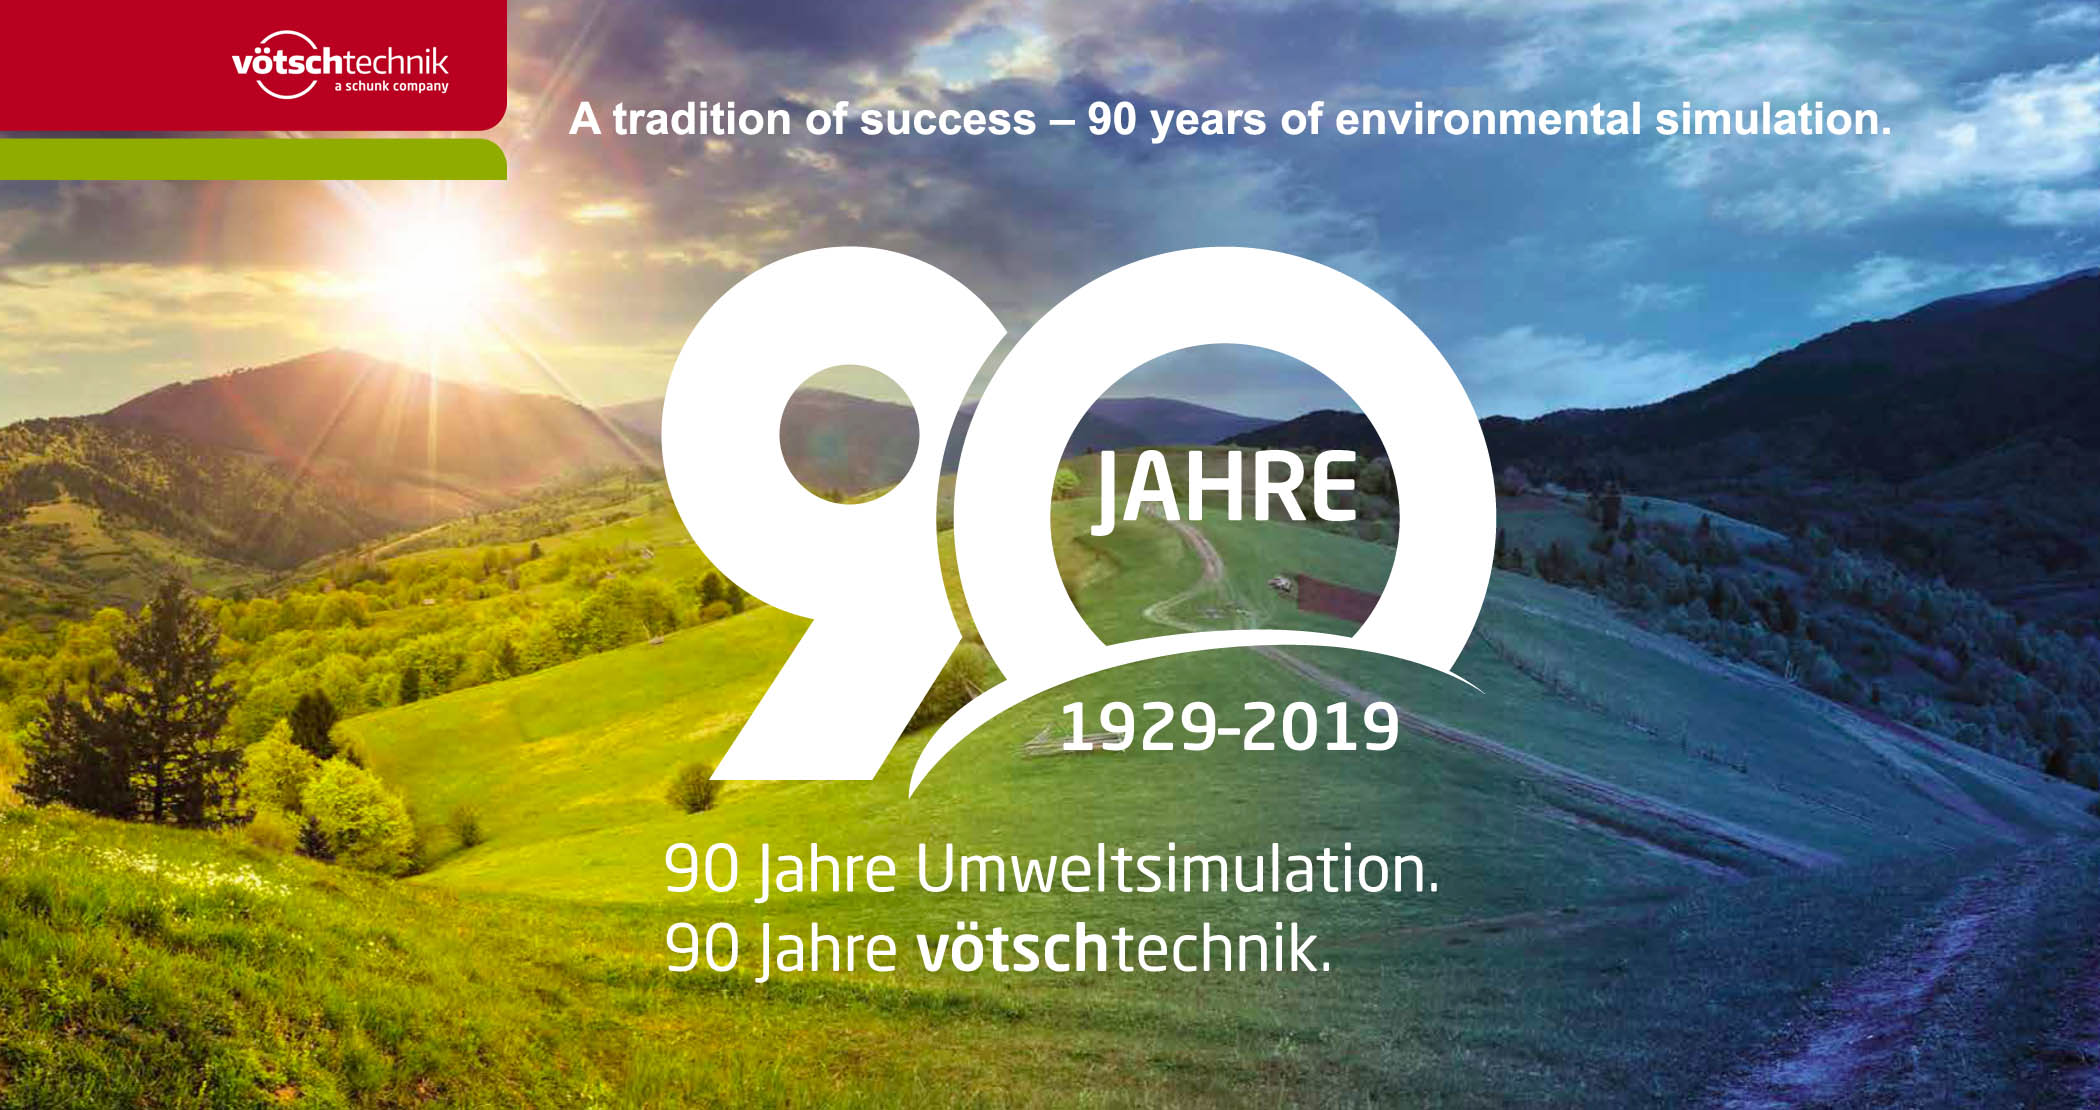 90 years of environmental simulation_Votsch